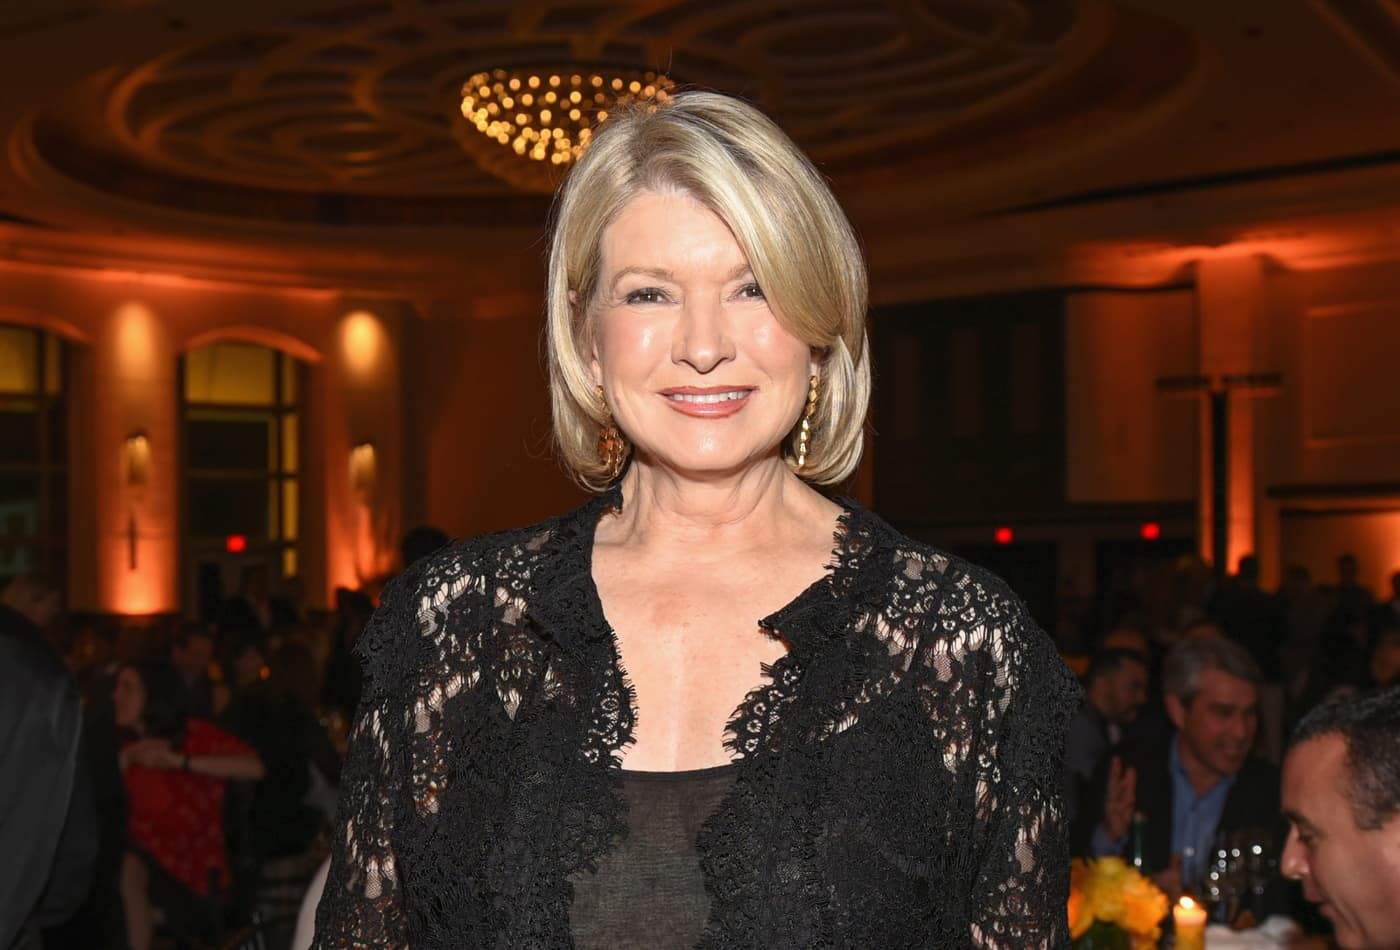 Green juices, little sleep and lots of CBD: Inside Martha Stewart's wellness routine at 79